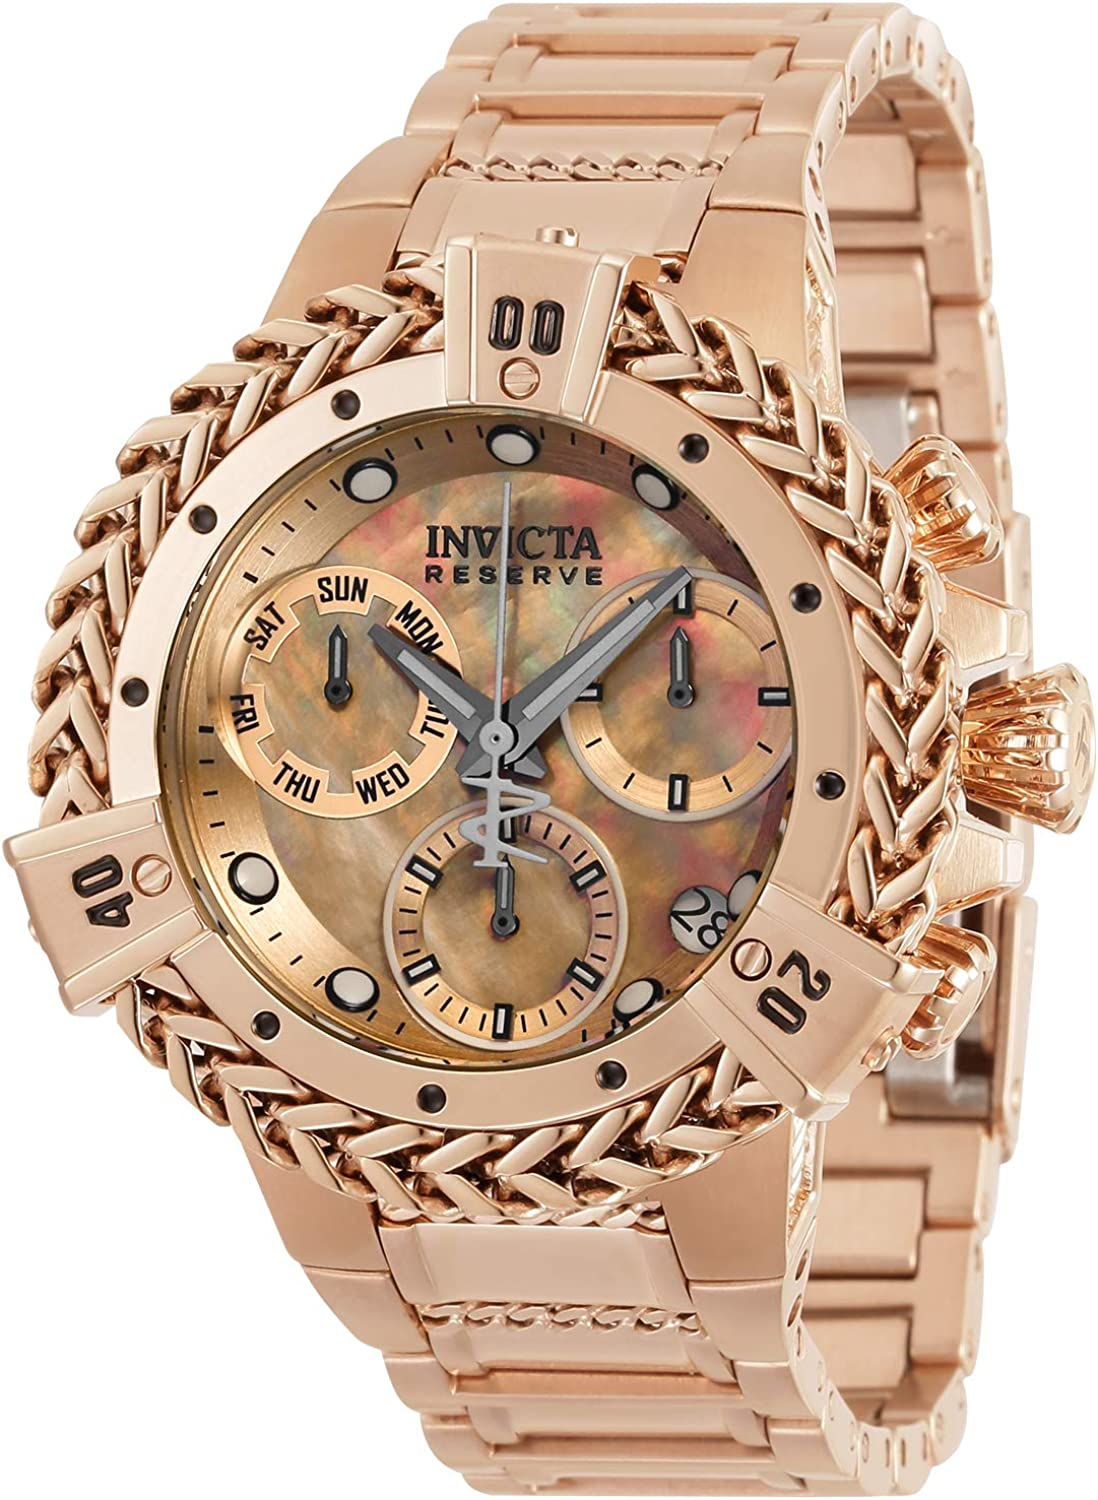 Invicta Women's Reserve ! Super beauty product restock quality top! HERC Quartz Steel S Stainless Watch with Ranking TOP5